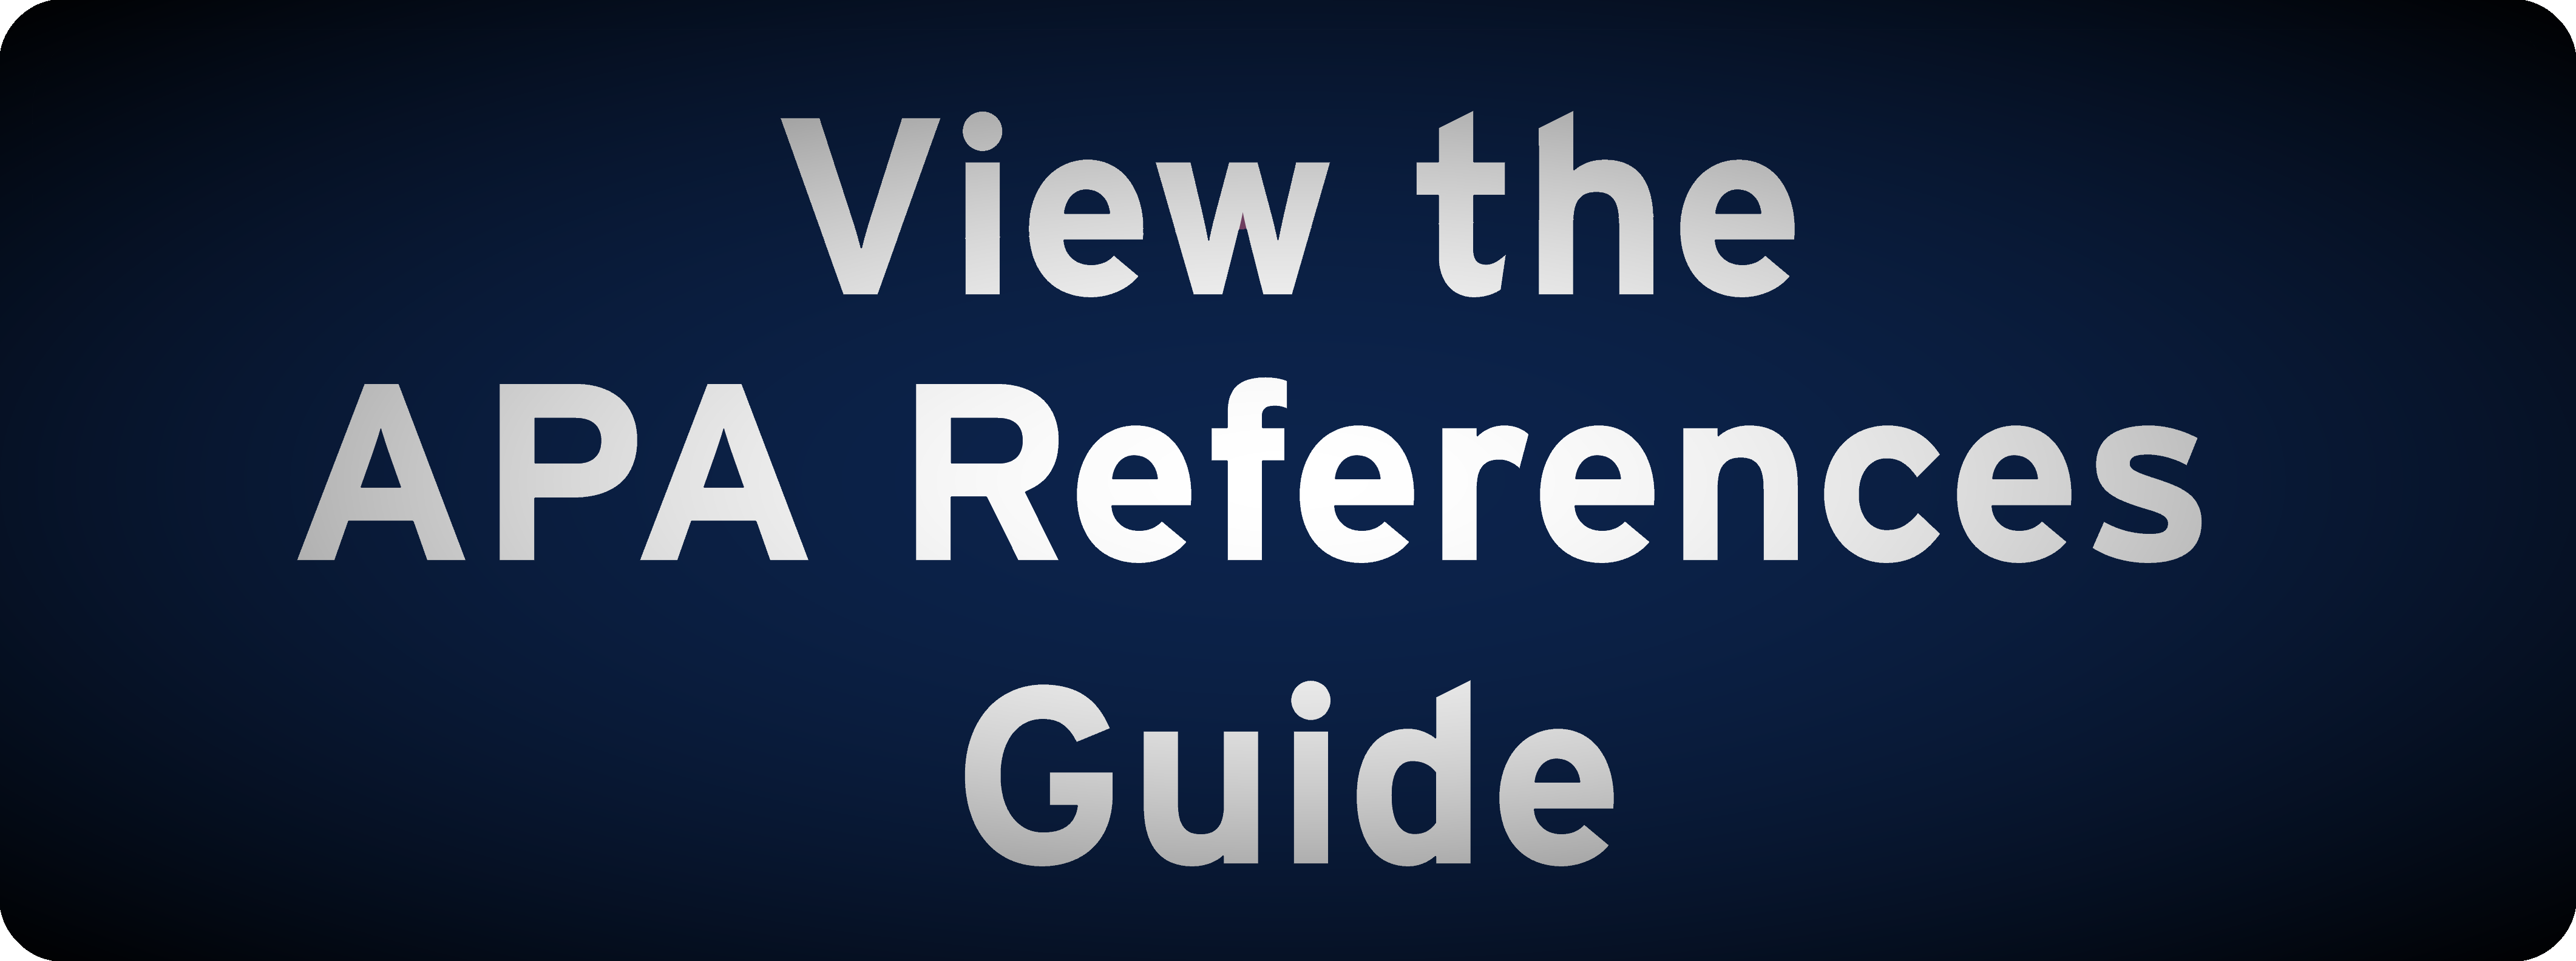 APA References Guide